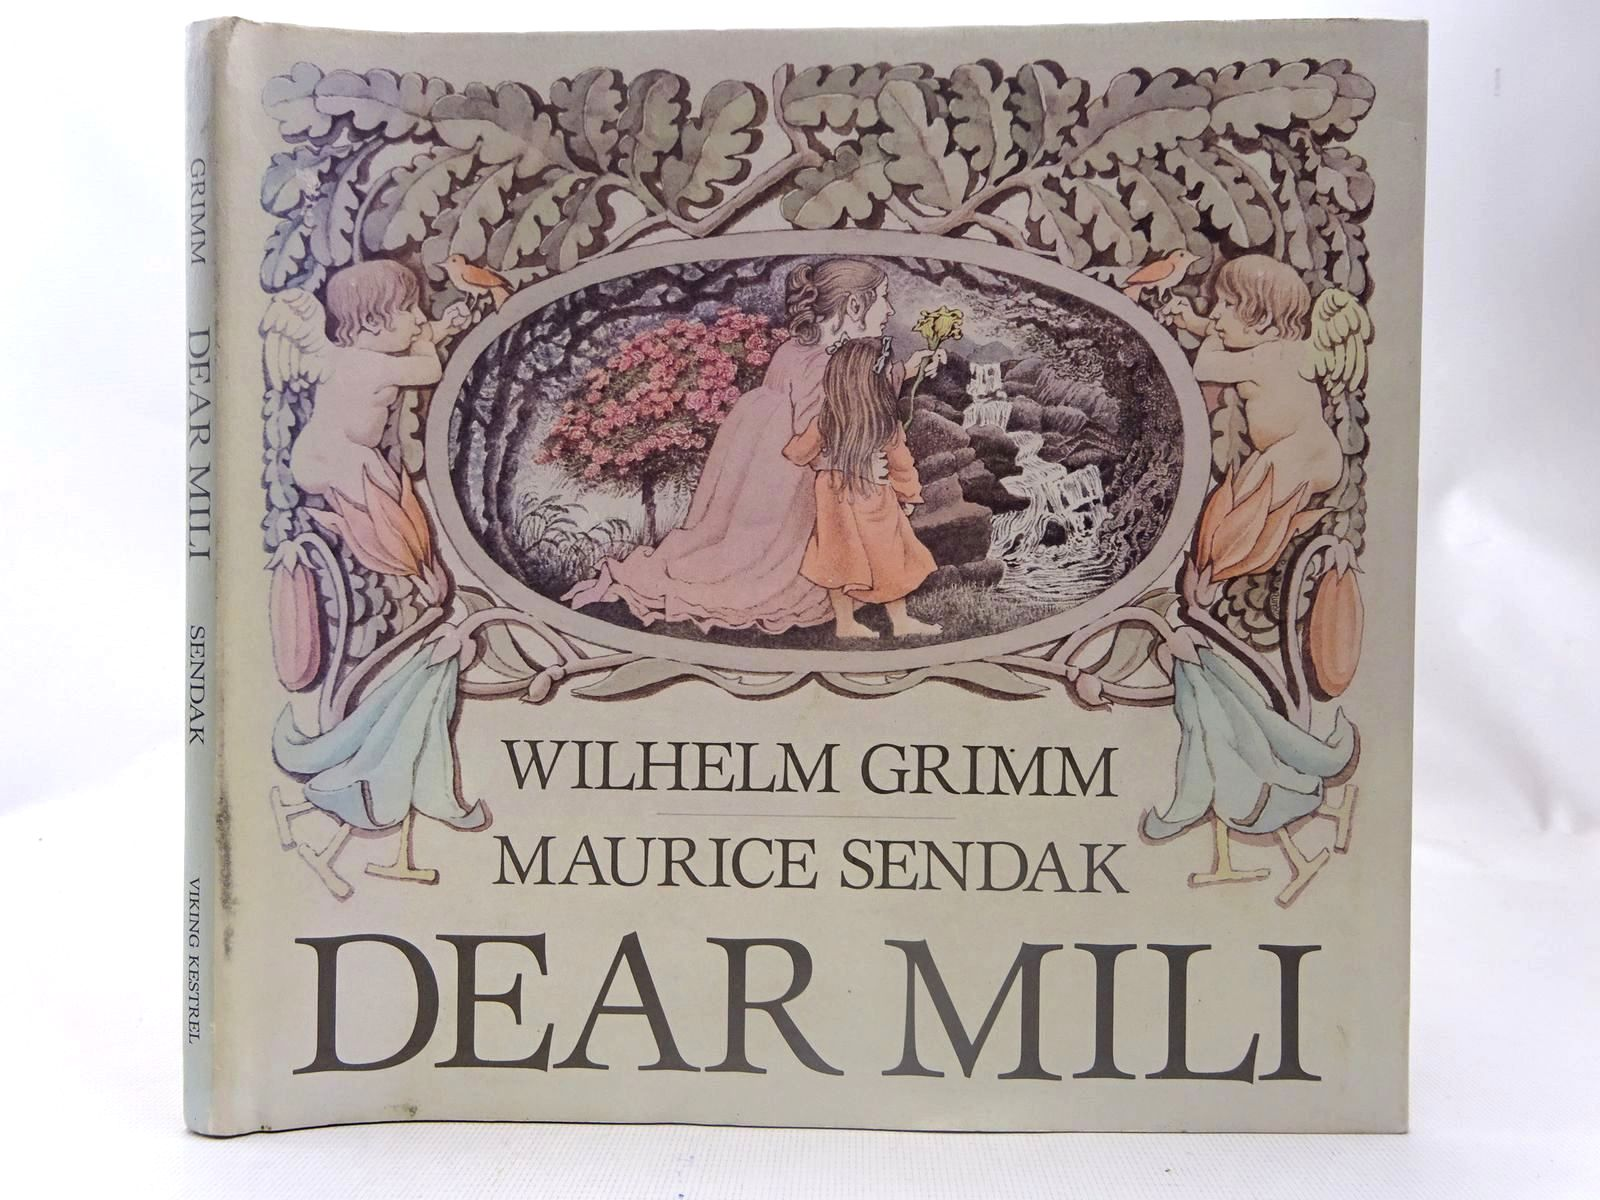 Photo of DEAR MILI written by Grimm, Wilhelm illustrated by Sendak, Maurice published by Viking Kestrel (STOCK CODE: 2127222)  for sale by Stella & Rose's Books